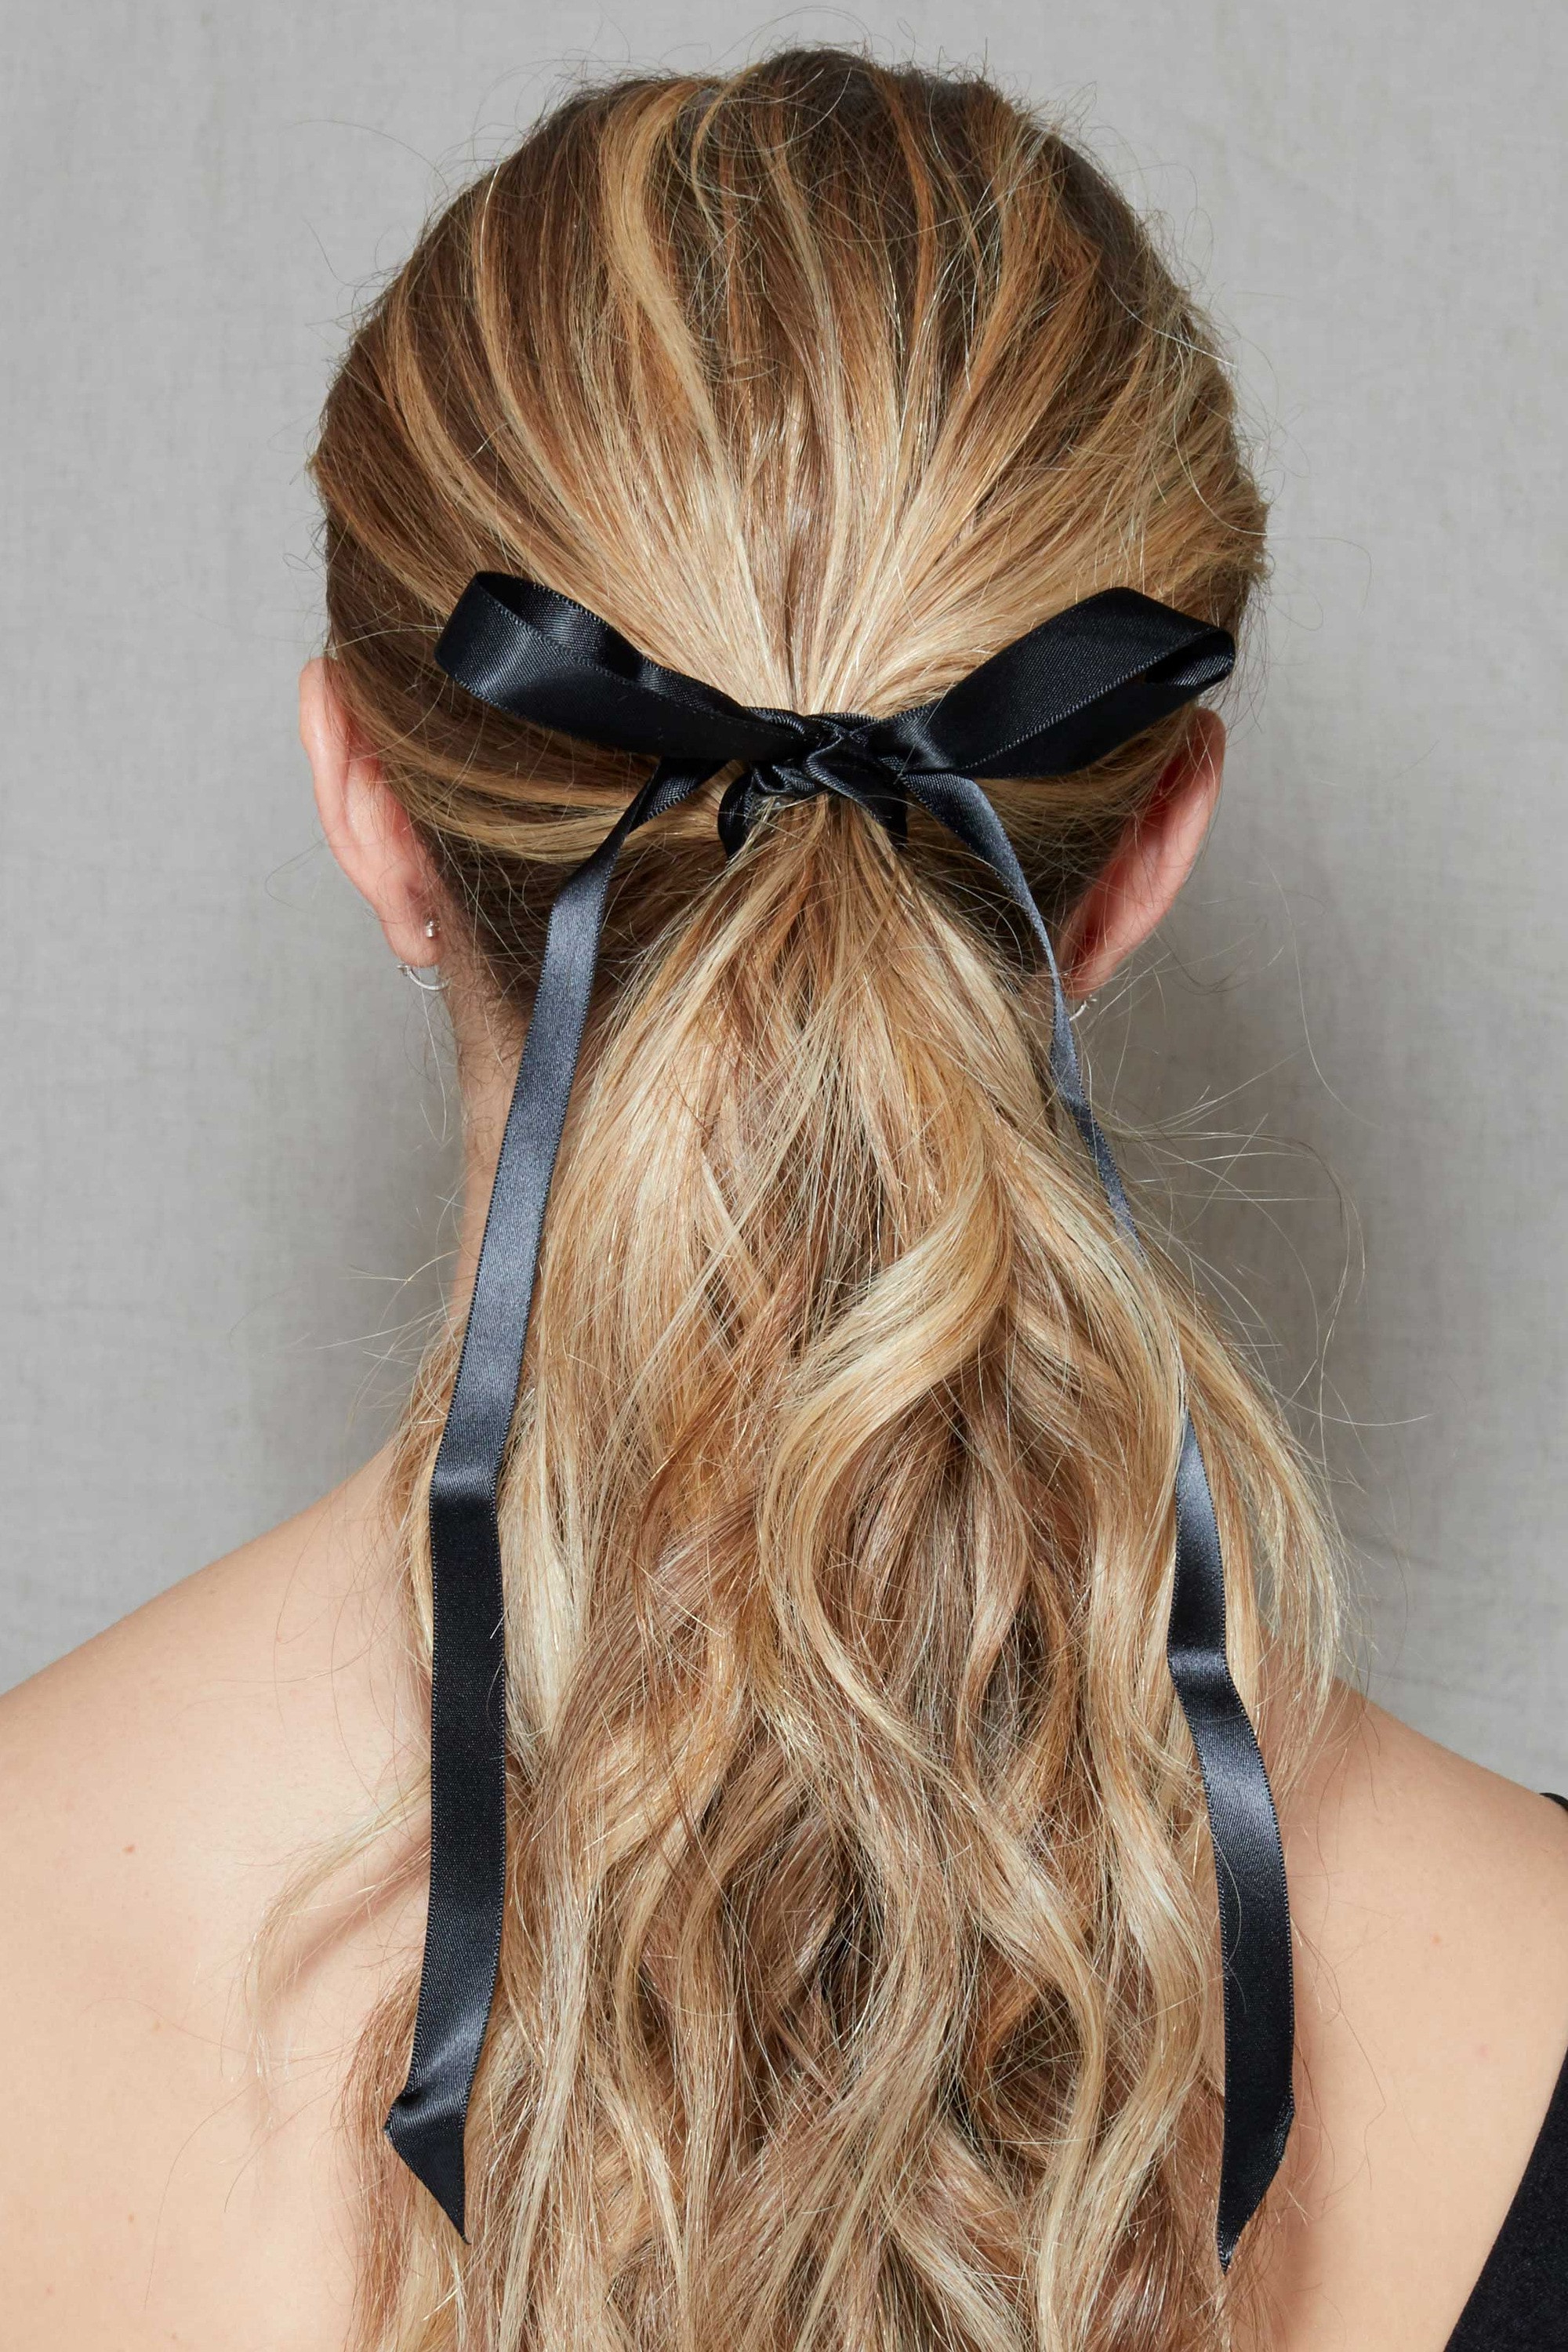 2018 Pinned Brunette Ribbons Bridal Hairstyles In 25 Wedding Guest Hairstyles That'll Make You The Chicest Attendee (View 15 of 20)